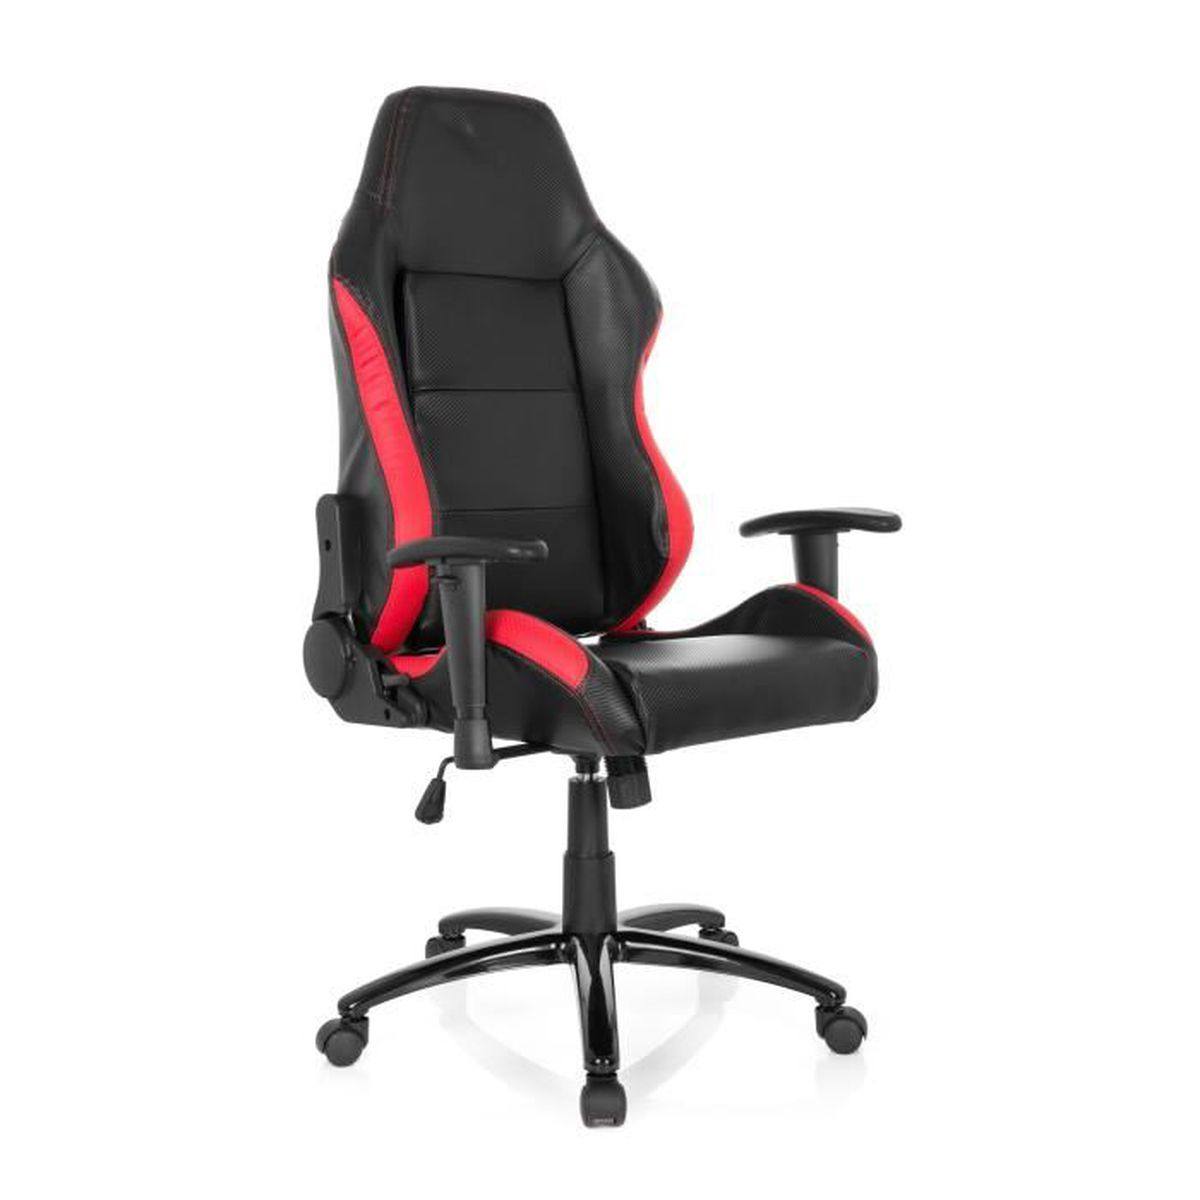 Chaise de bureau chaise gaming chaise de bureau gaming siège baqu